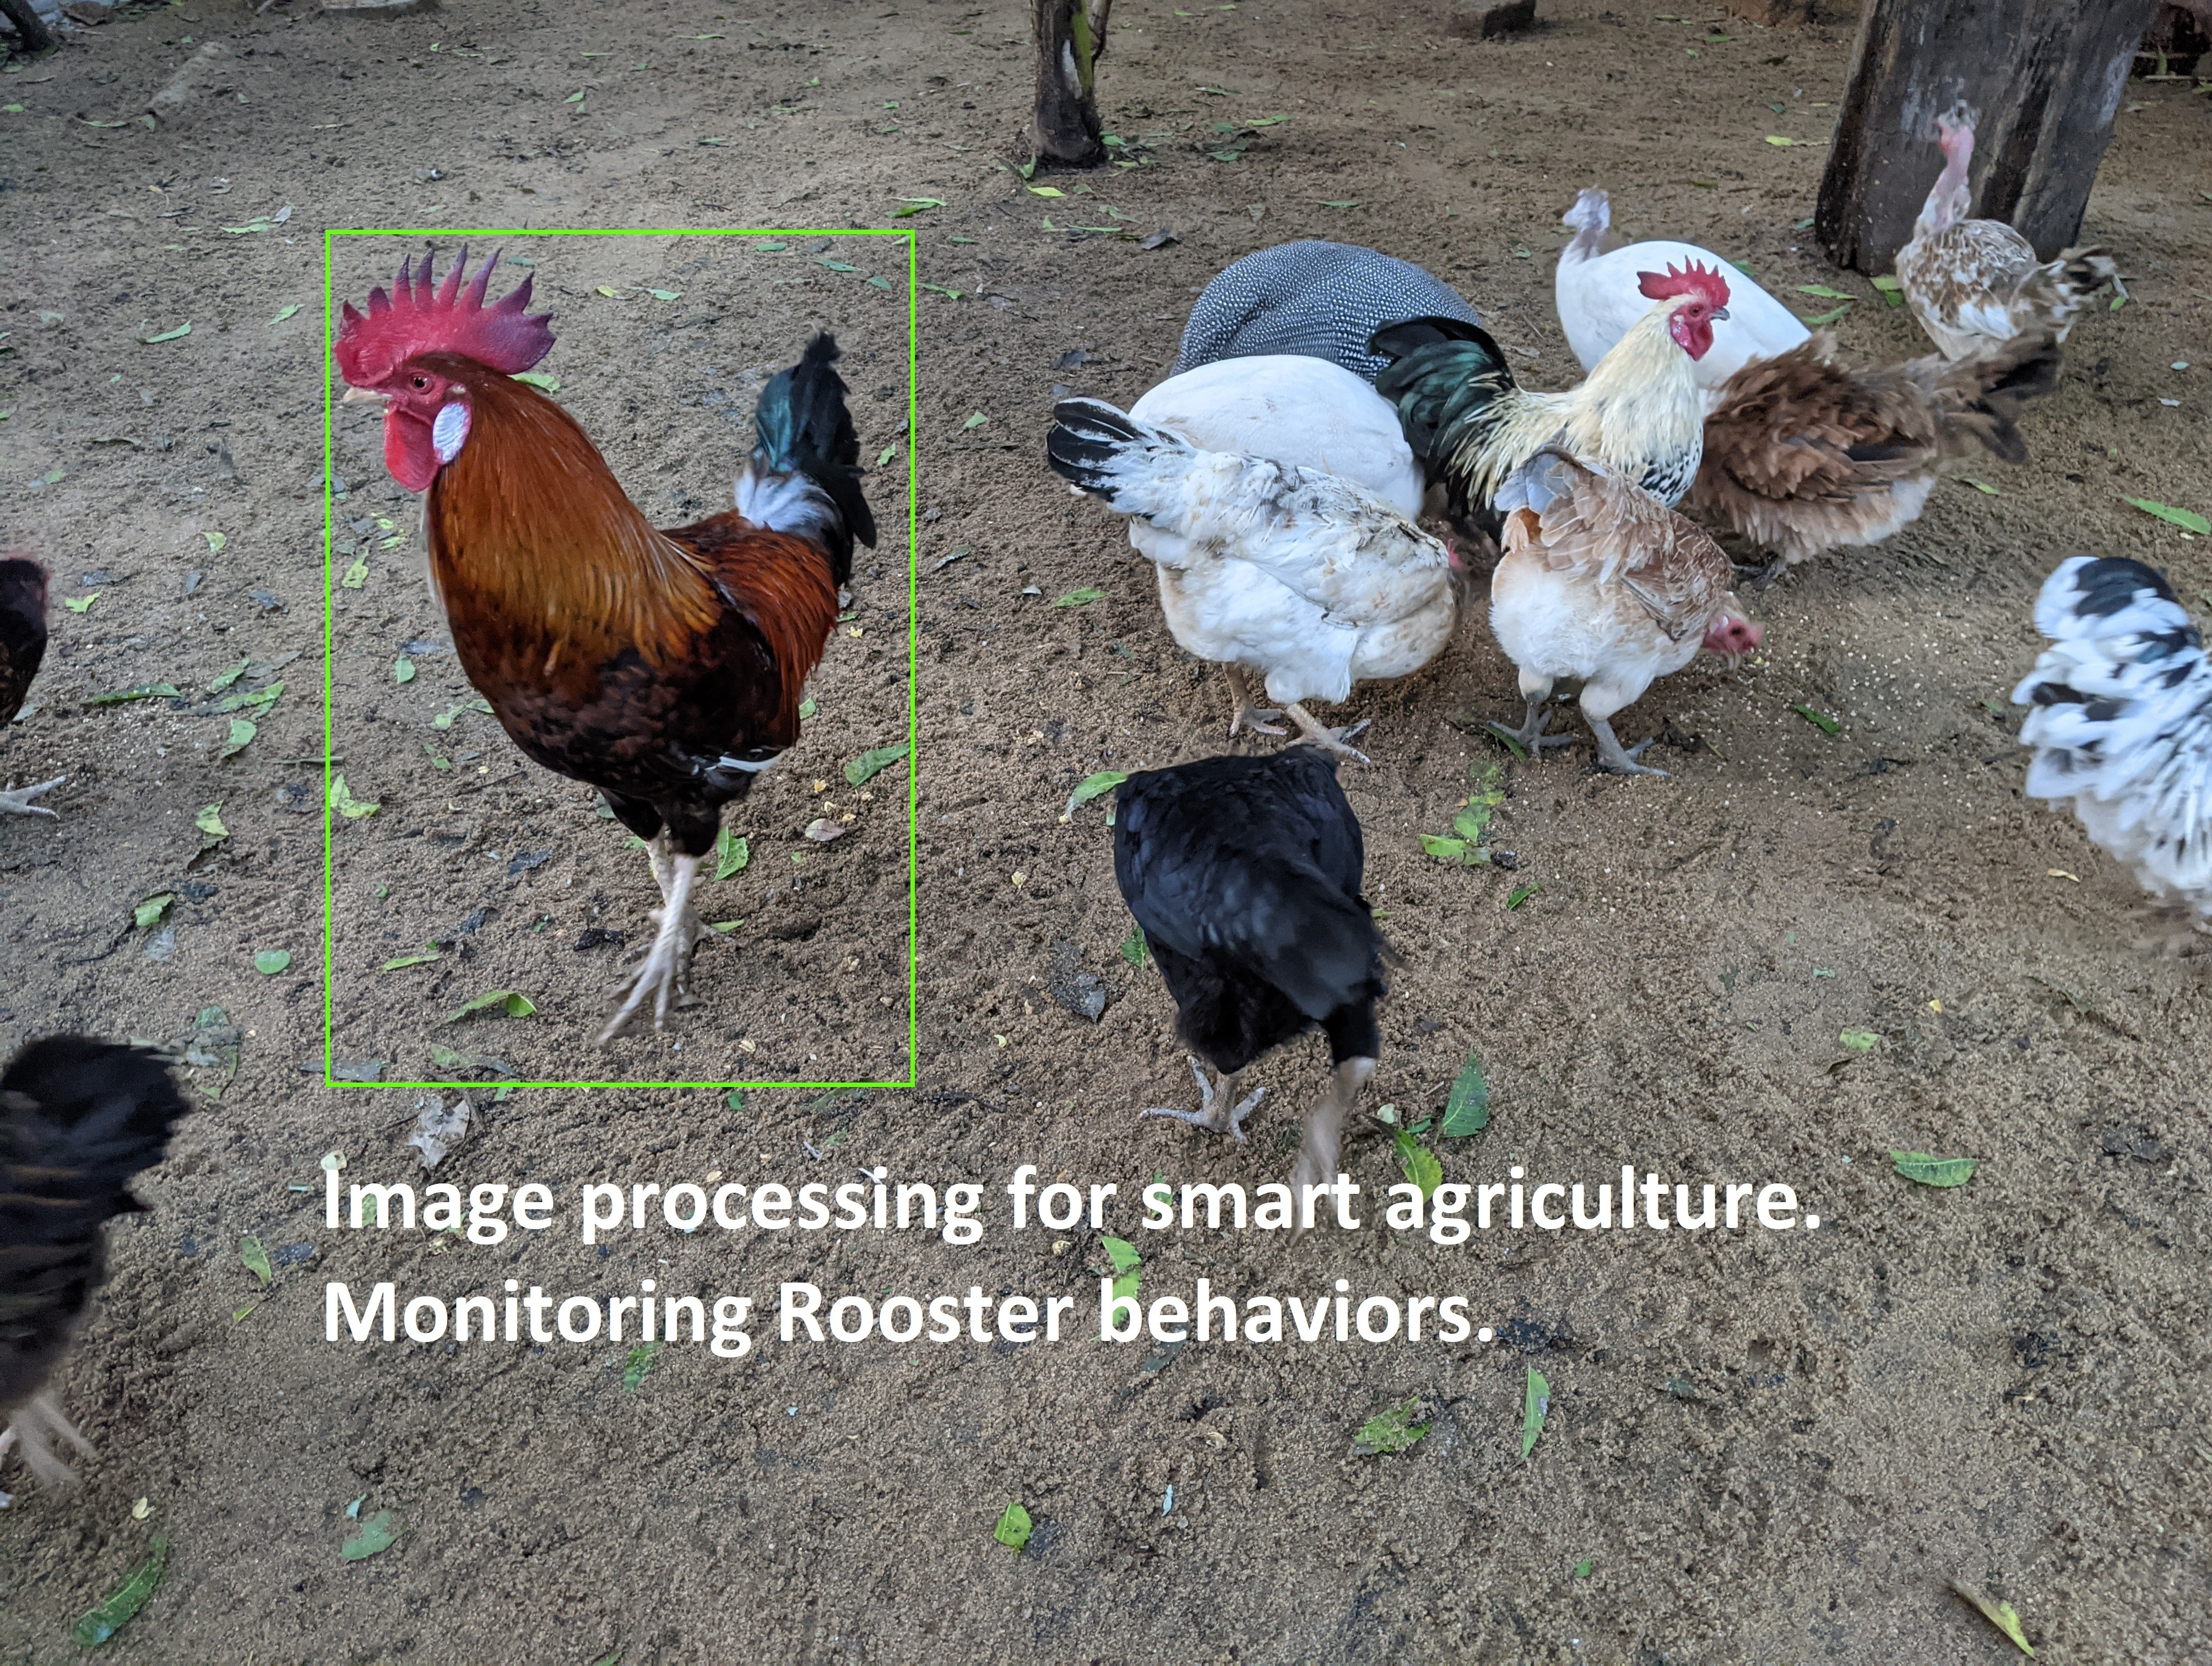 Image processing for smart agriculture. Monitoring Rooster behaviors.